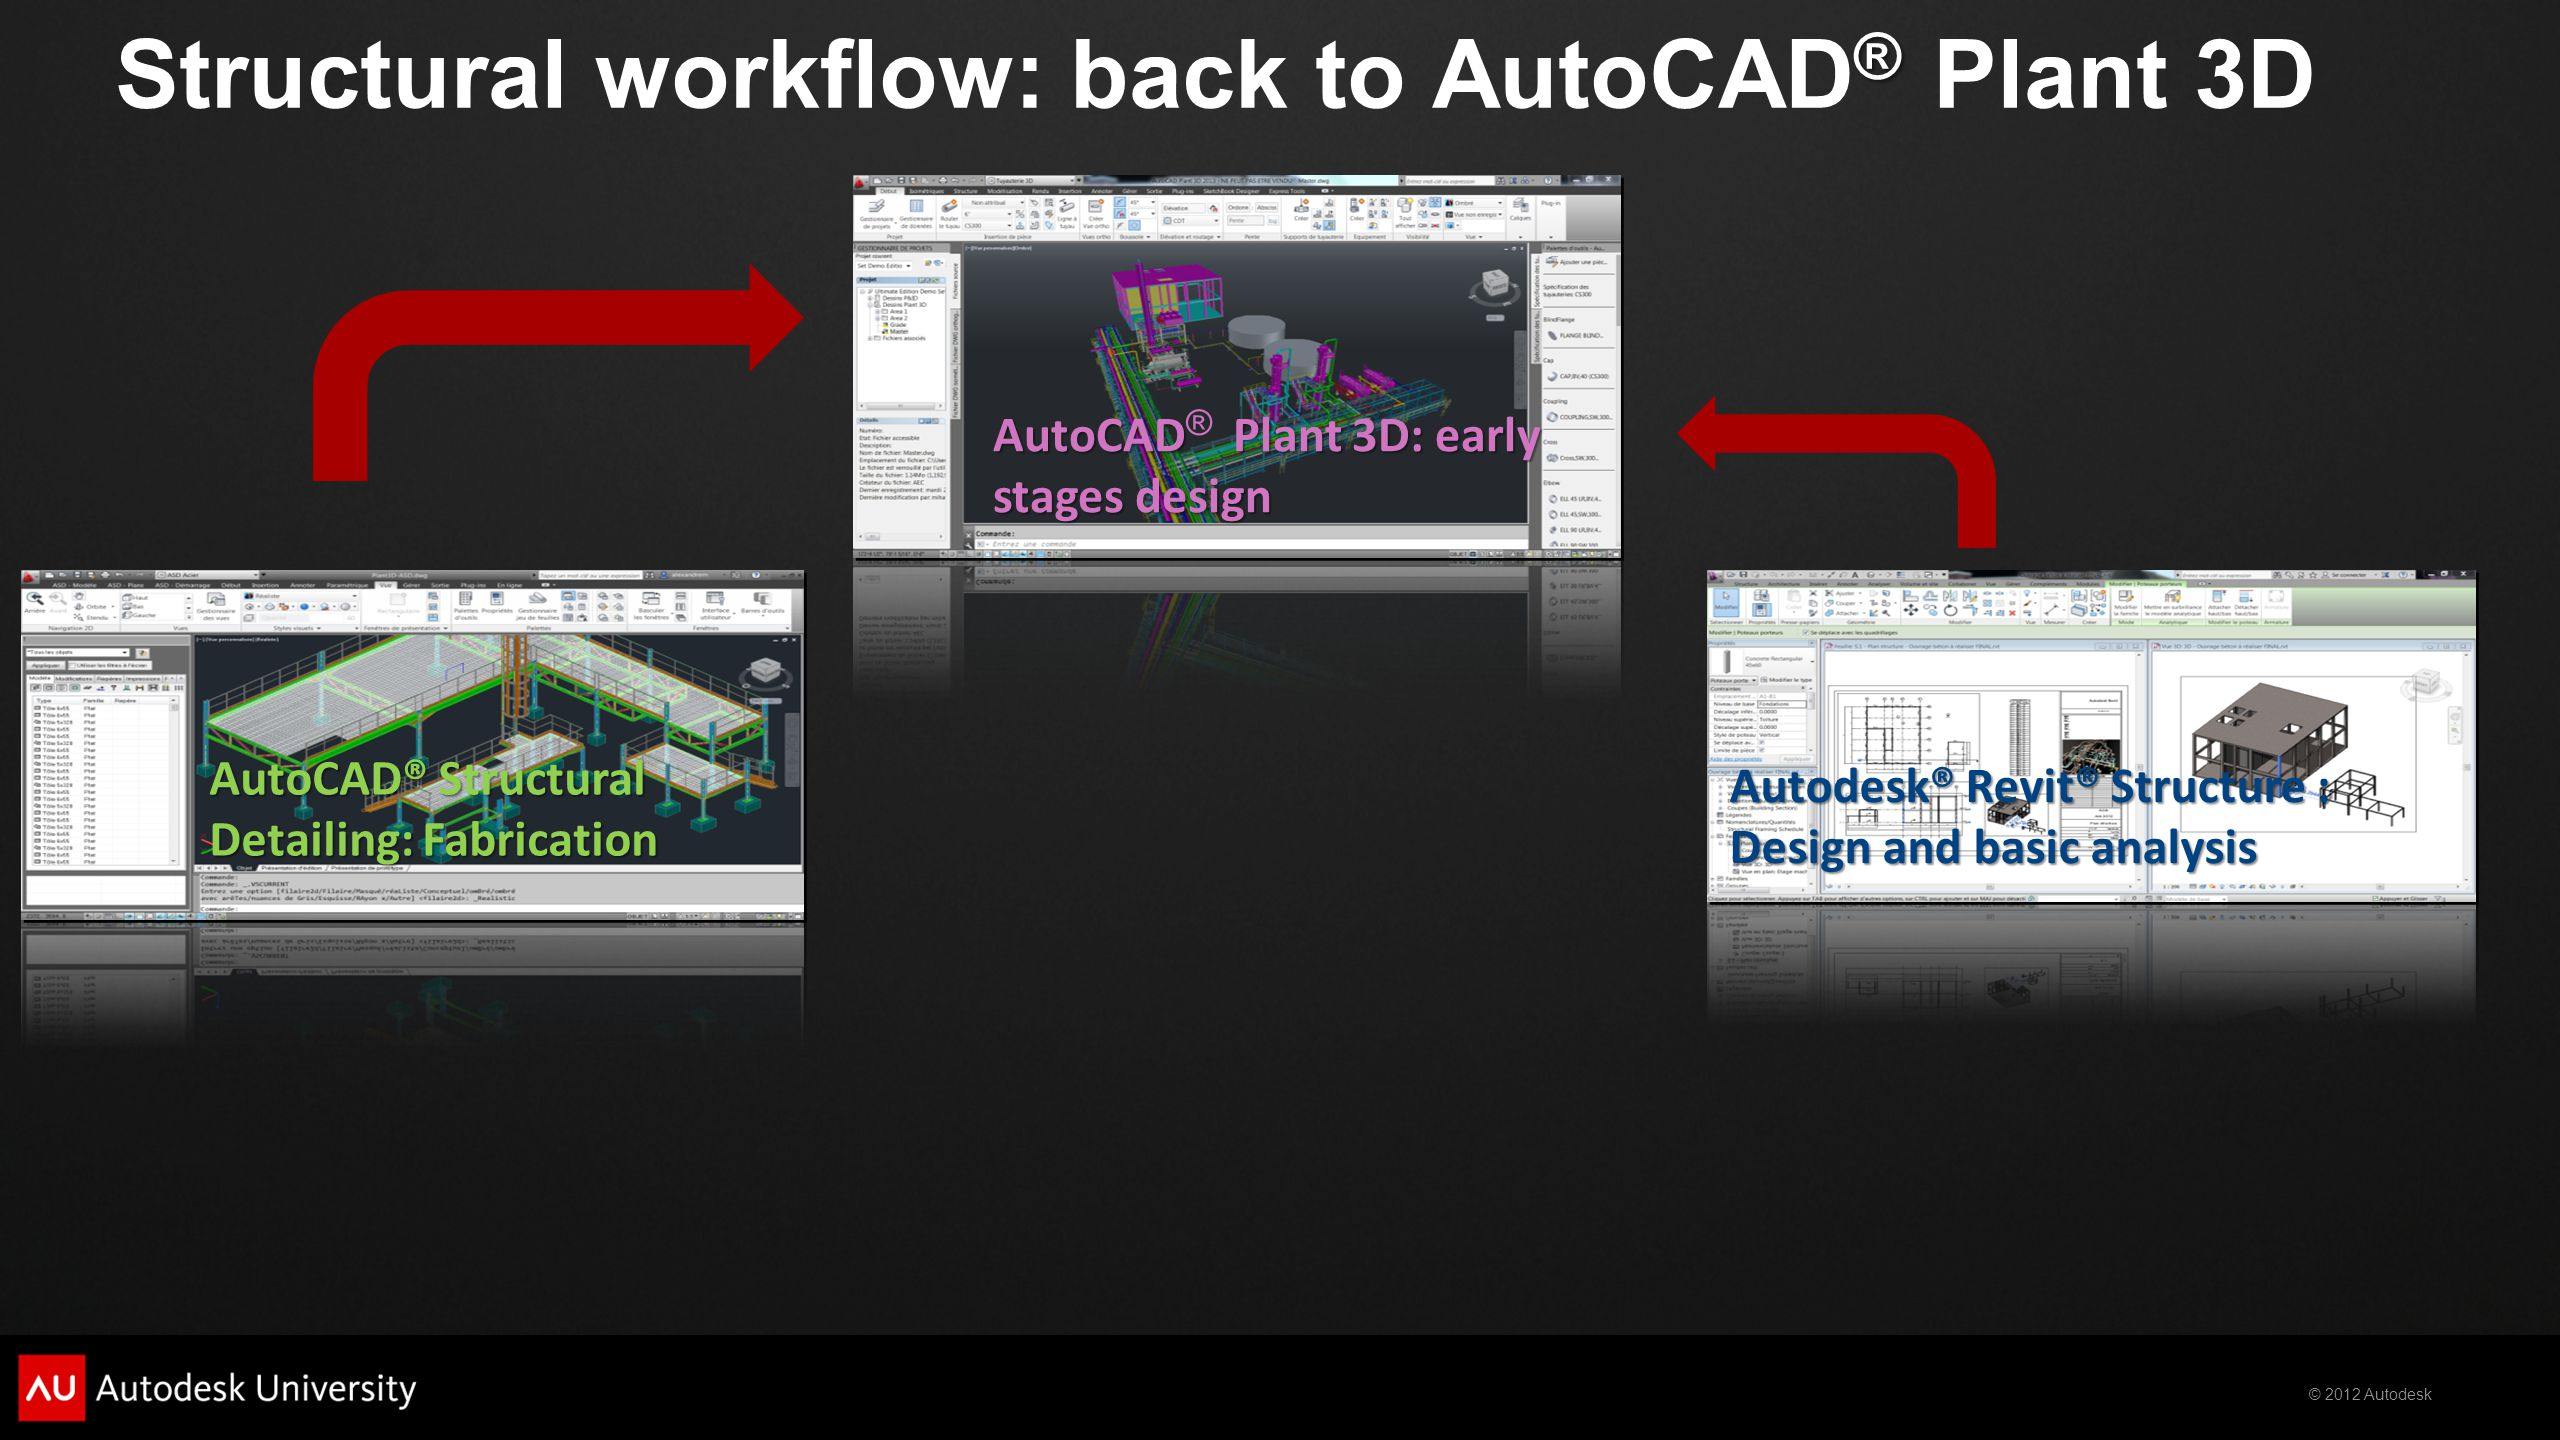 © 2012 Autodesk ® Structural workflow: back to AutoCAD ® Plant 3D Autodesk® Revit® Structure : Design and basic analysis AutoCAD® Structural Detailing